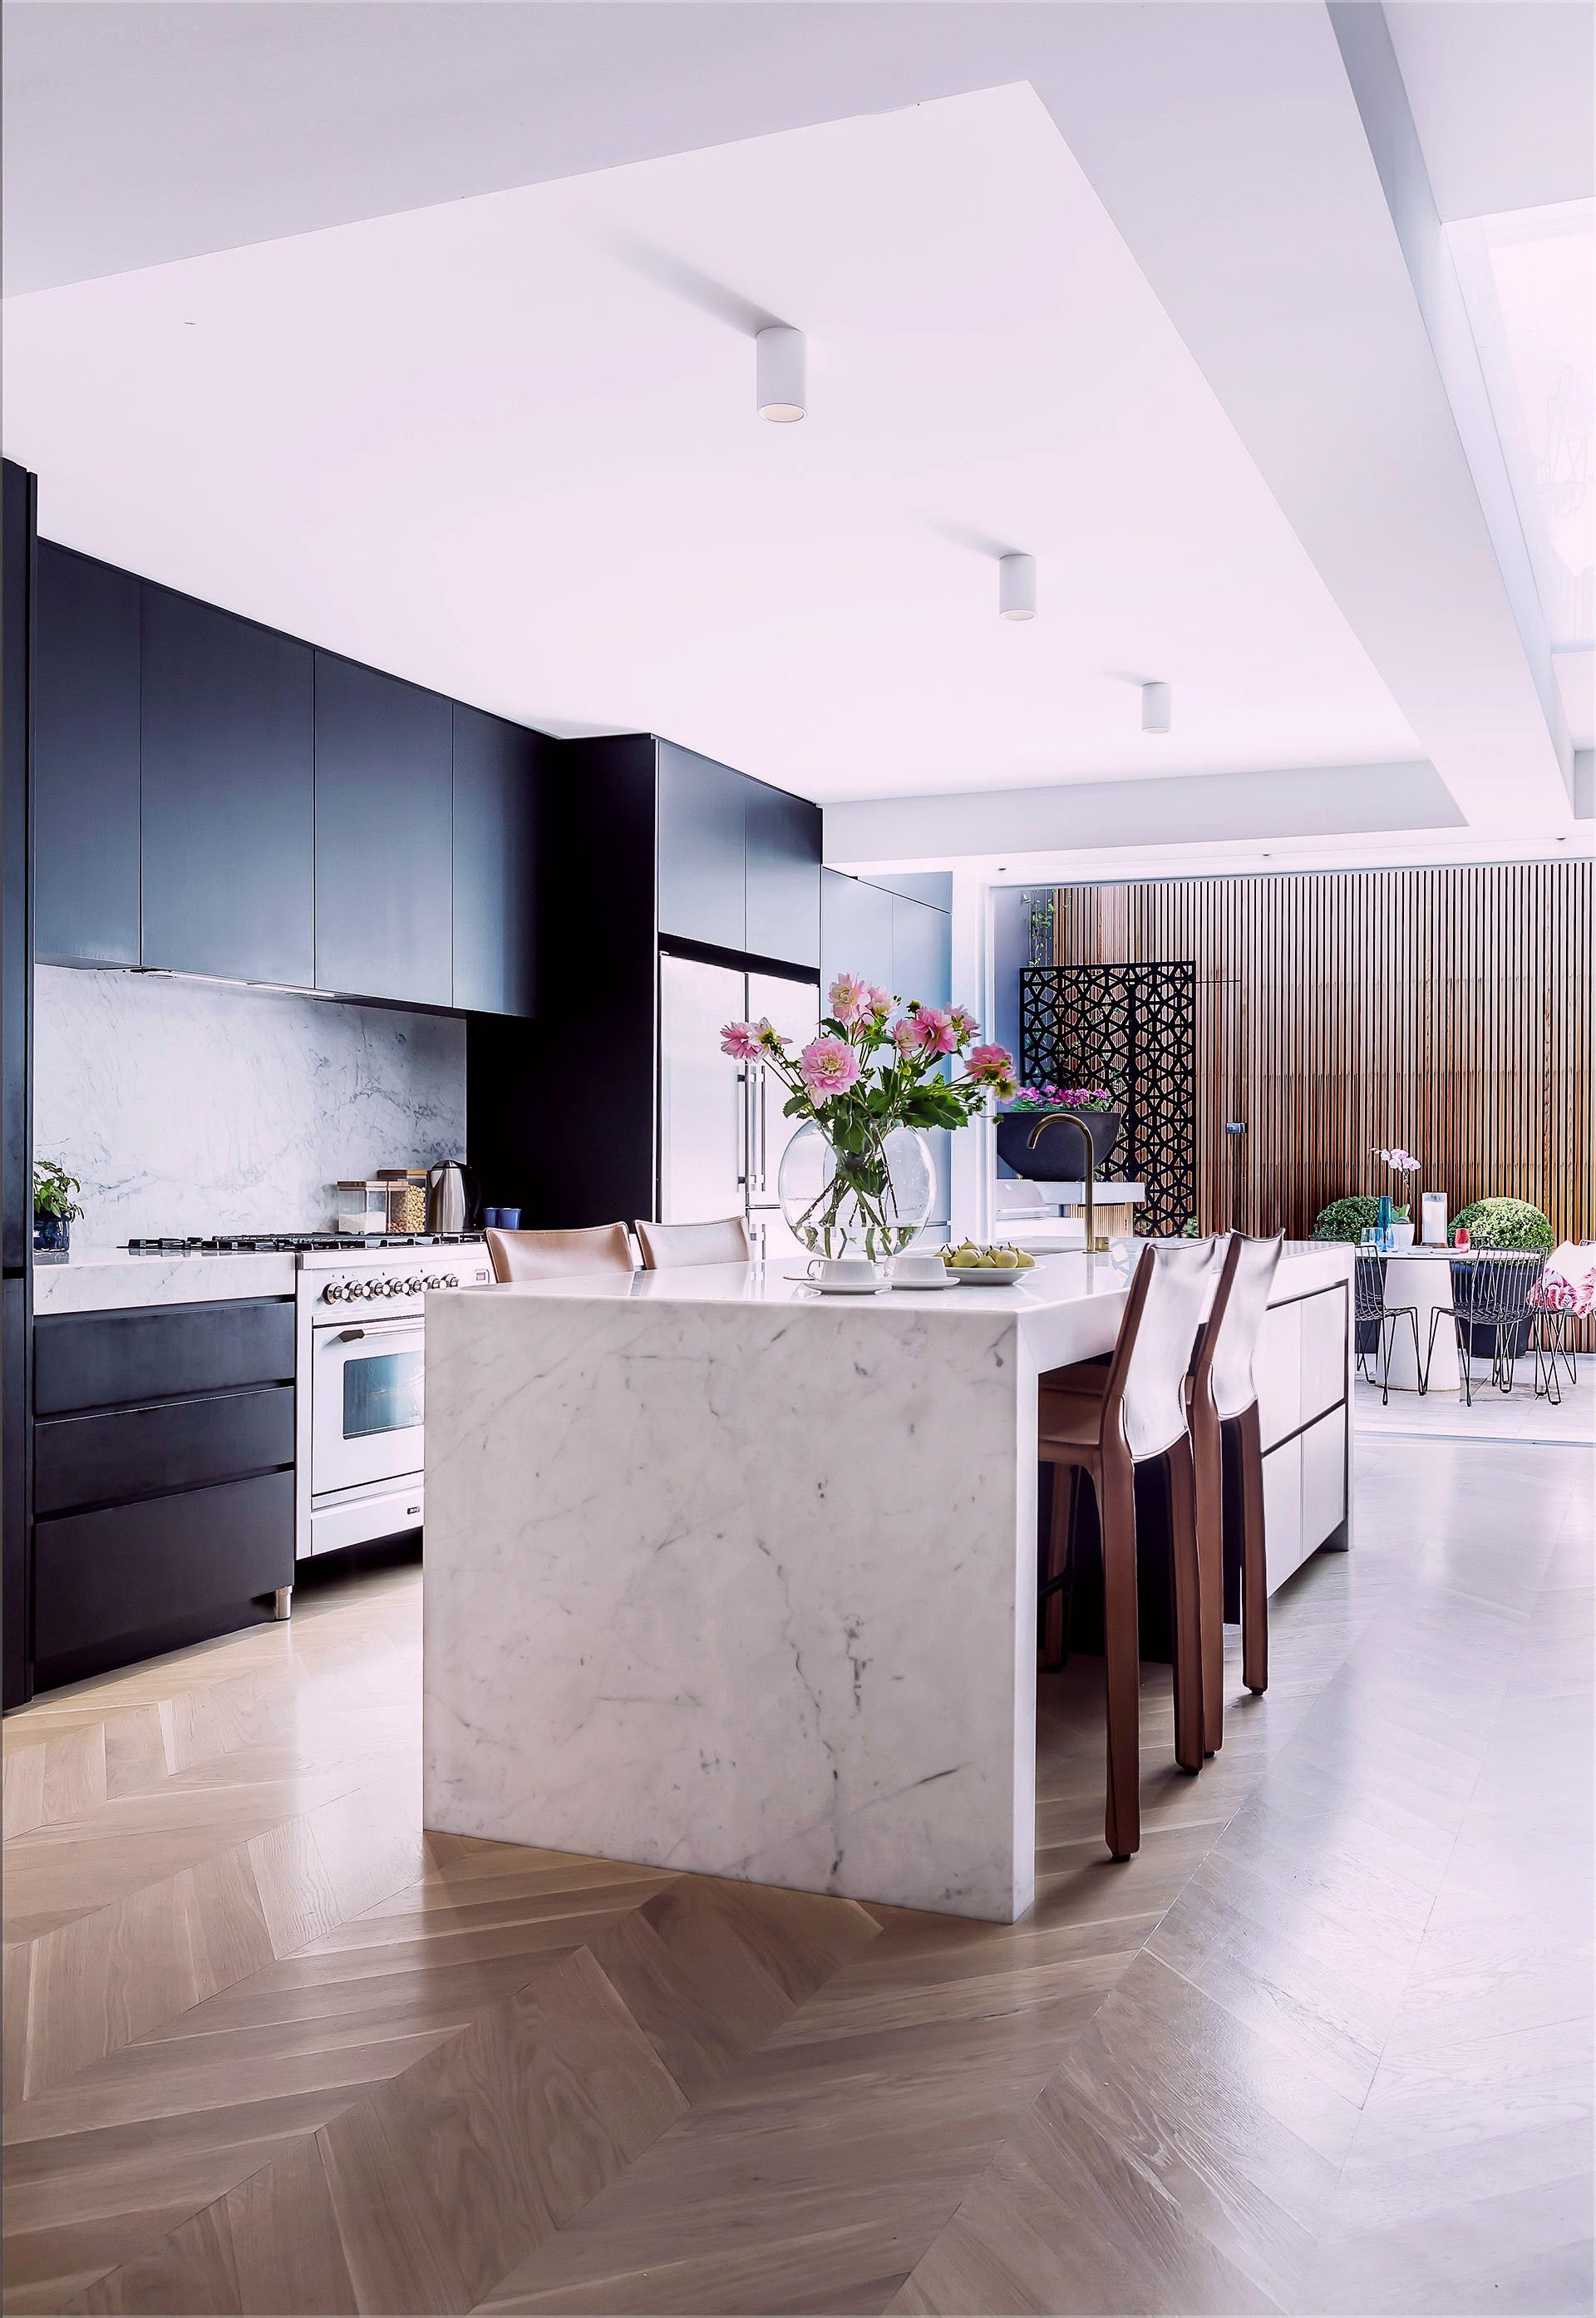 26 best kitchen decor design or remodel ideas that will inspire you rh in pinterest com